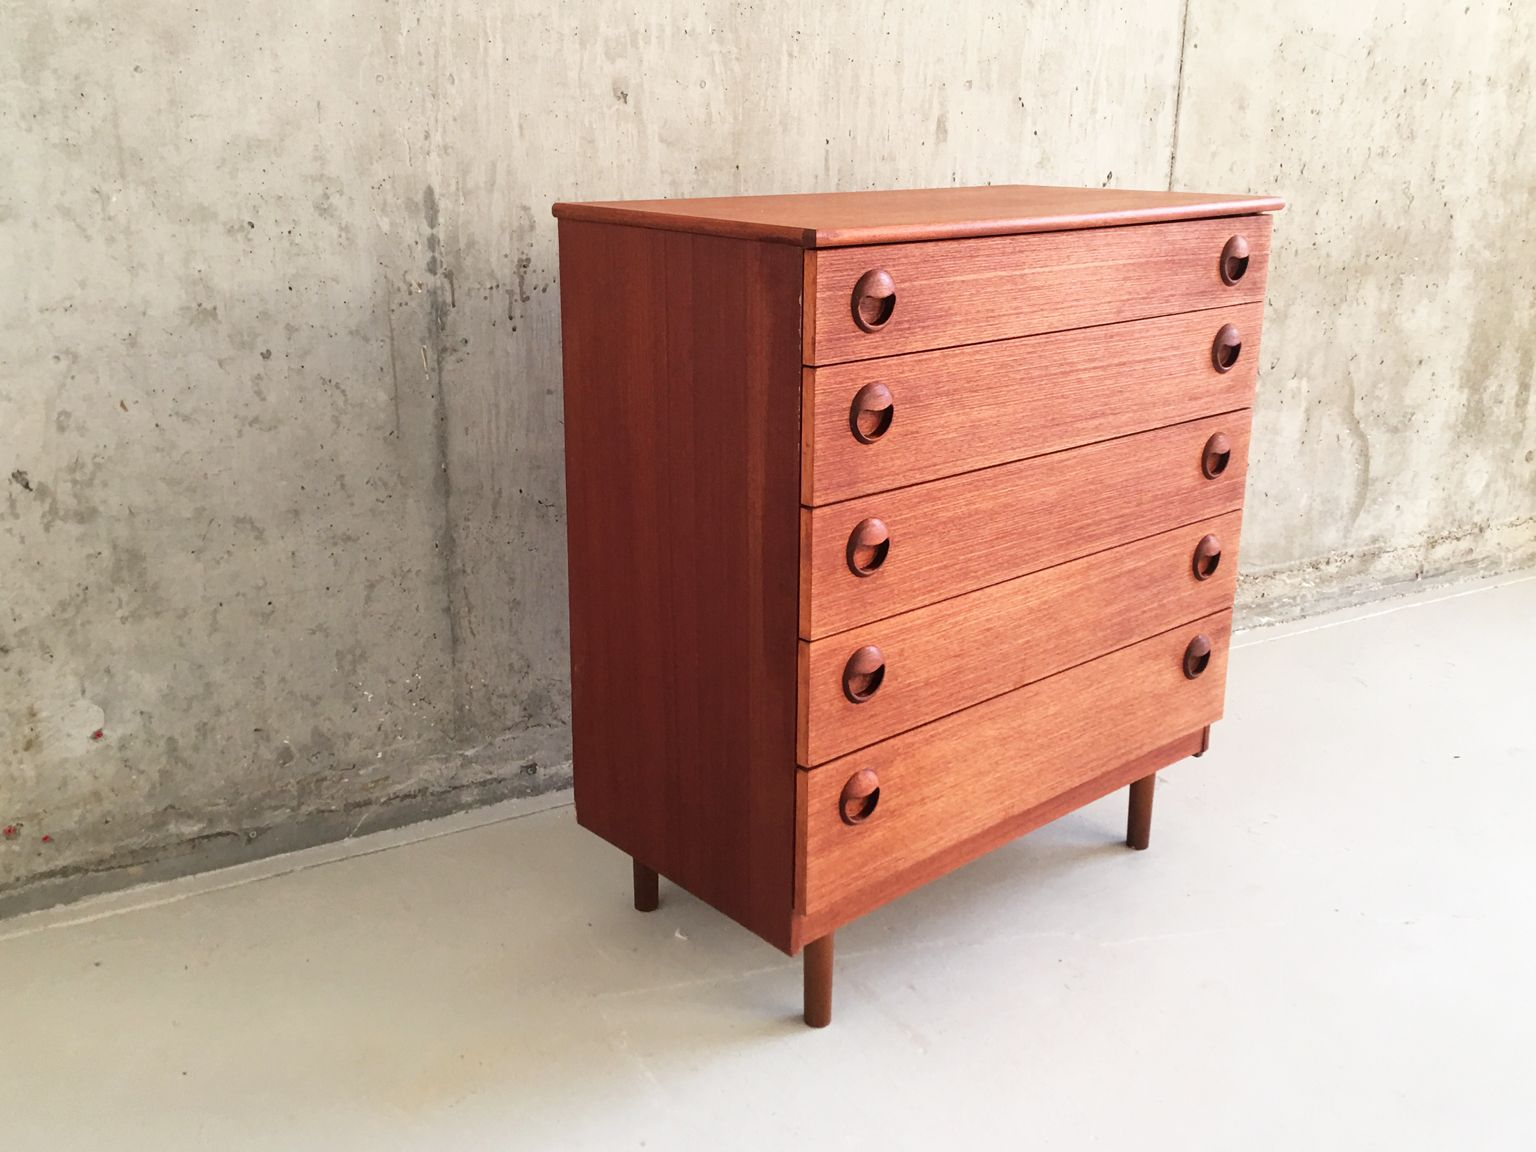 hohe britische mid century kommode aus teak 1970er bei pamono kaufen. Black Bedroom Furniture Sets. Home Design Ideas